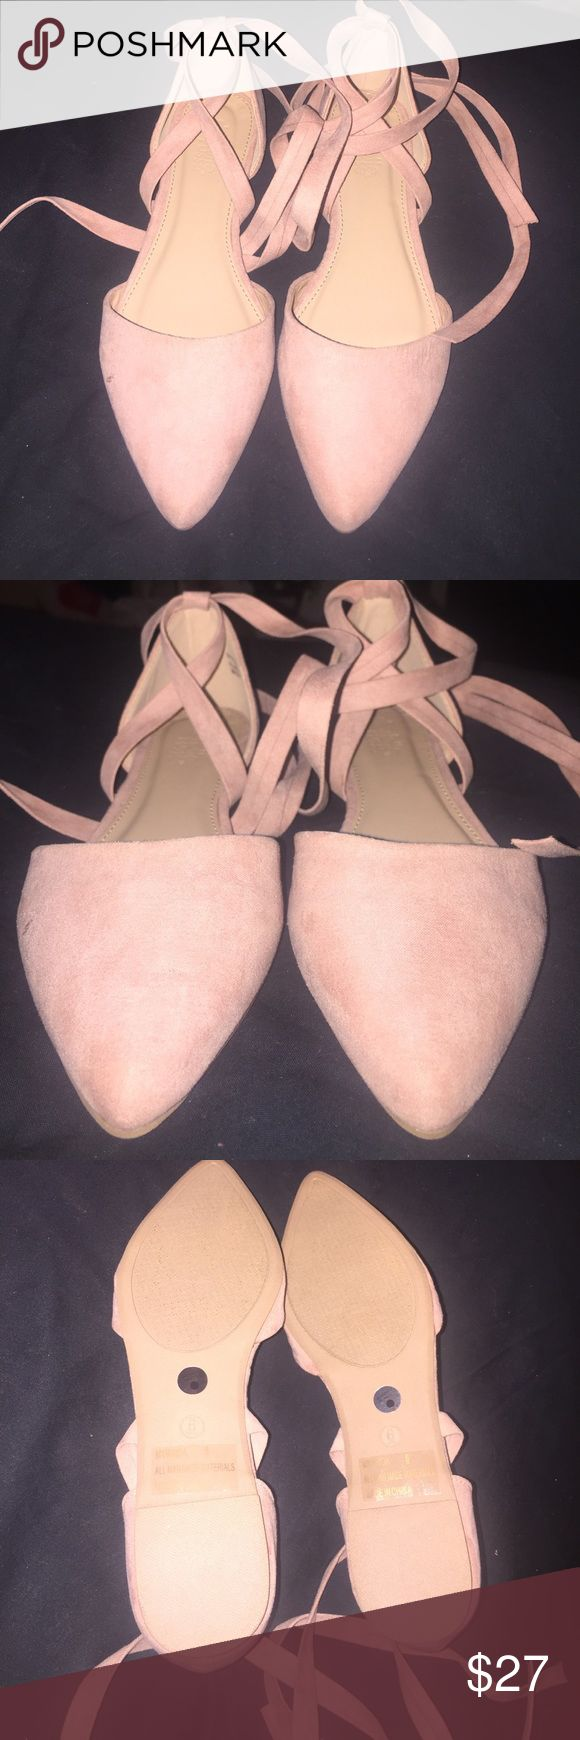 Flats Never ever used it in ver good condition the color is light pink Charlotte Russe Shoes Flats & Loafers